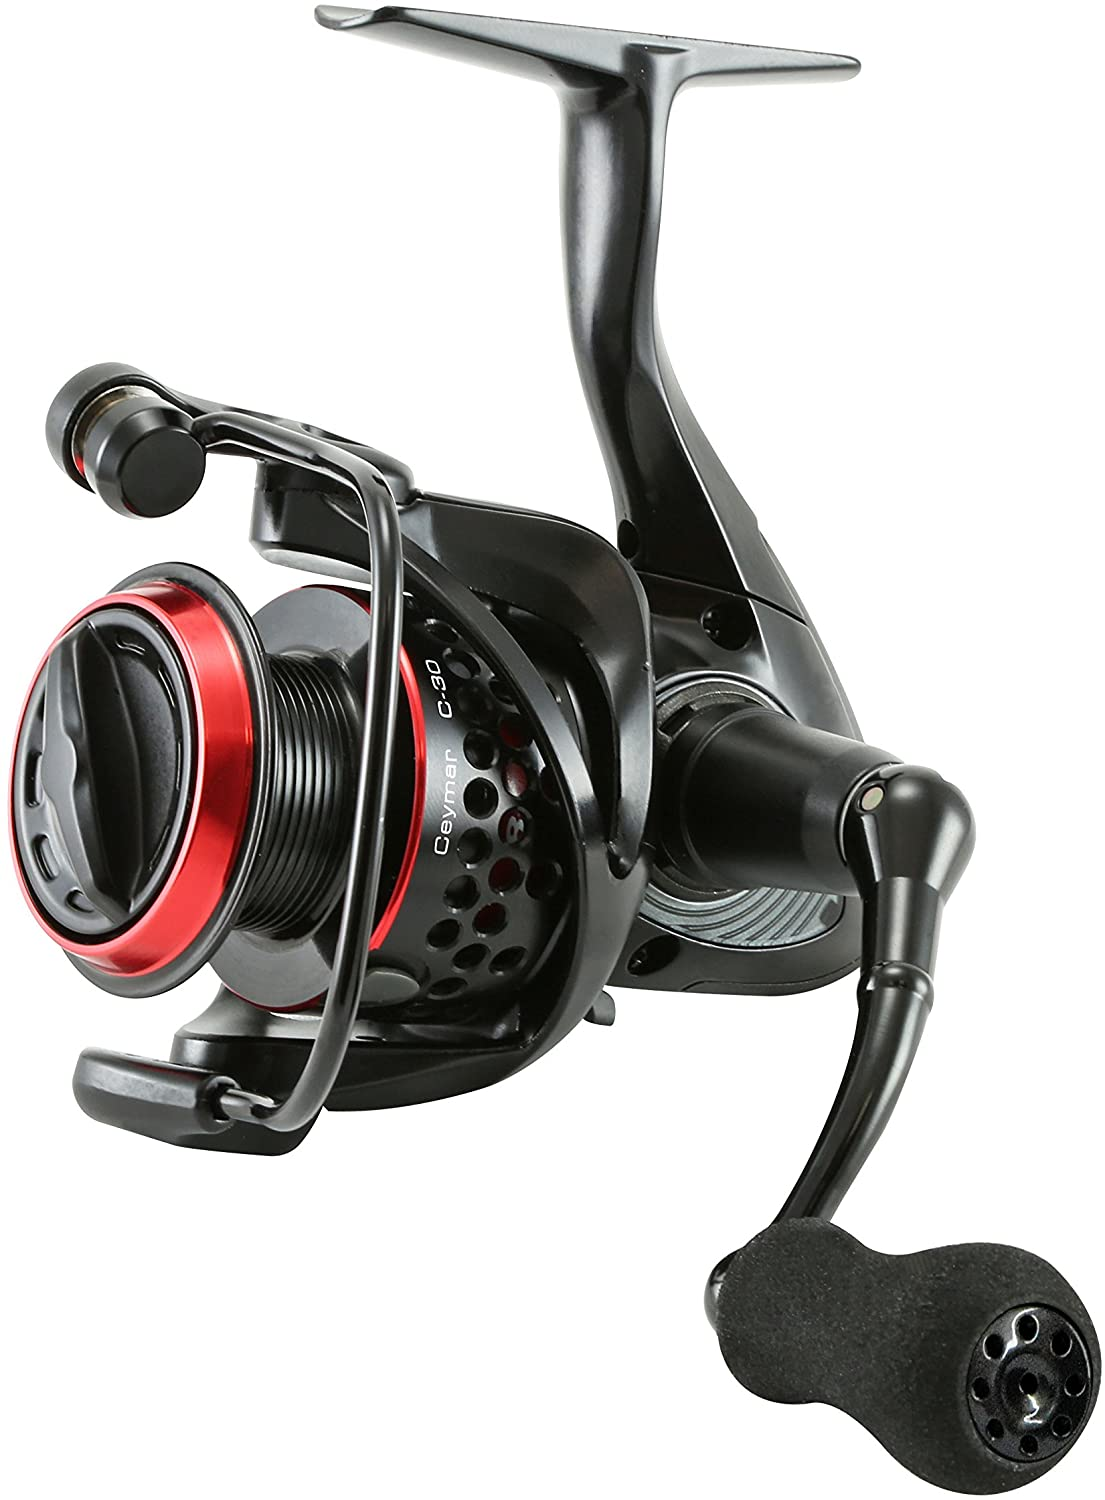 Best Spinning Reel: Okuma Ceymar Spinning Reel